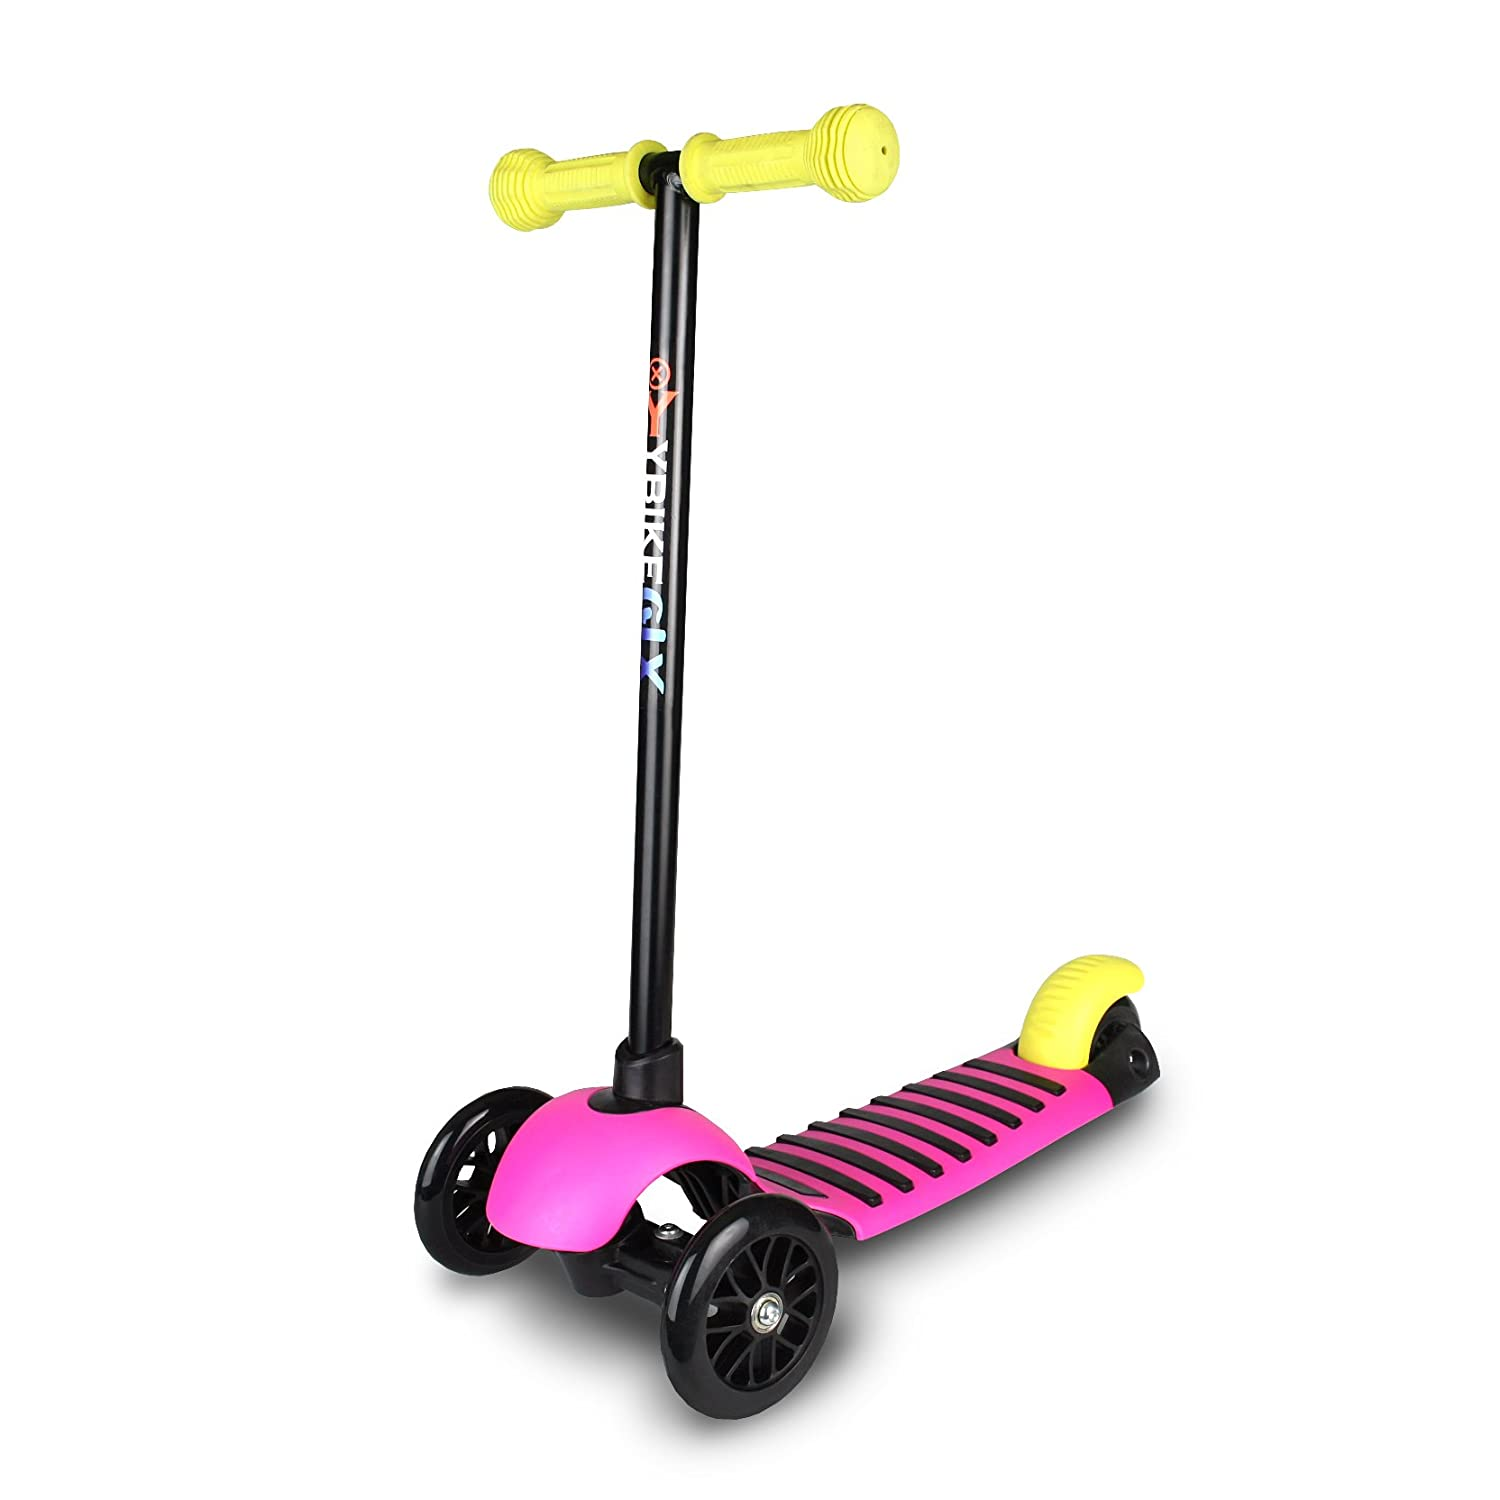 gas powered toys for adults with Razor Scooter 3 Wheels on Toystoyslamborghinigallardolp56012v additionally 7 additionally Clipart Crayon furthermore Razor Scooter 3 Wheels additionally Top 10 Best Electric Scooters That Are Fun To Ride.